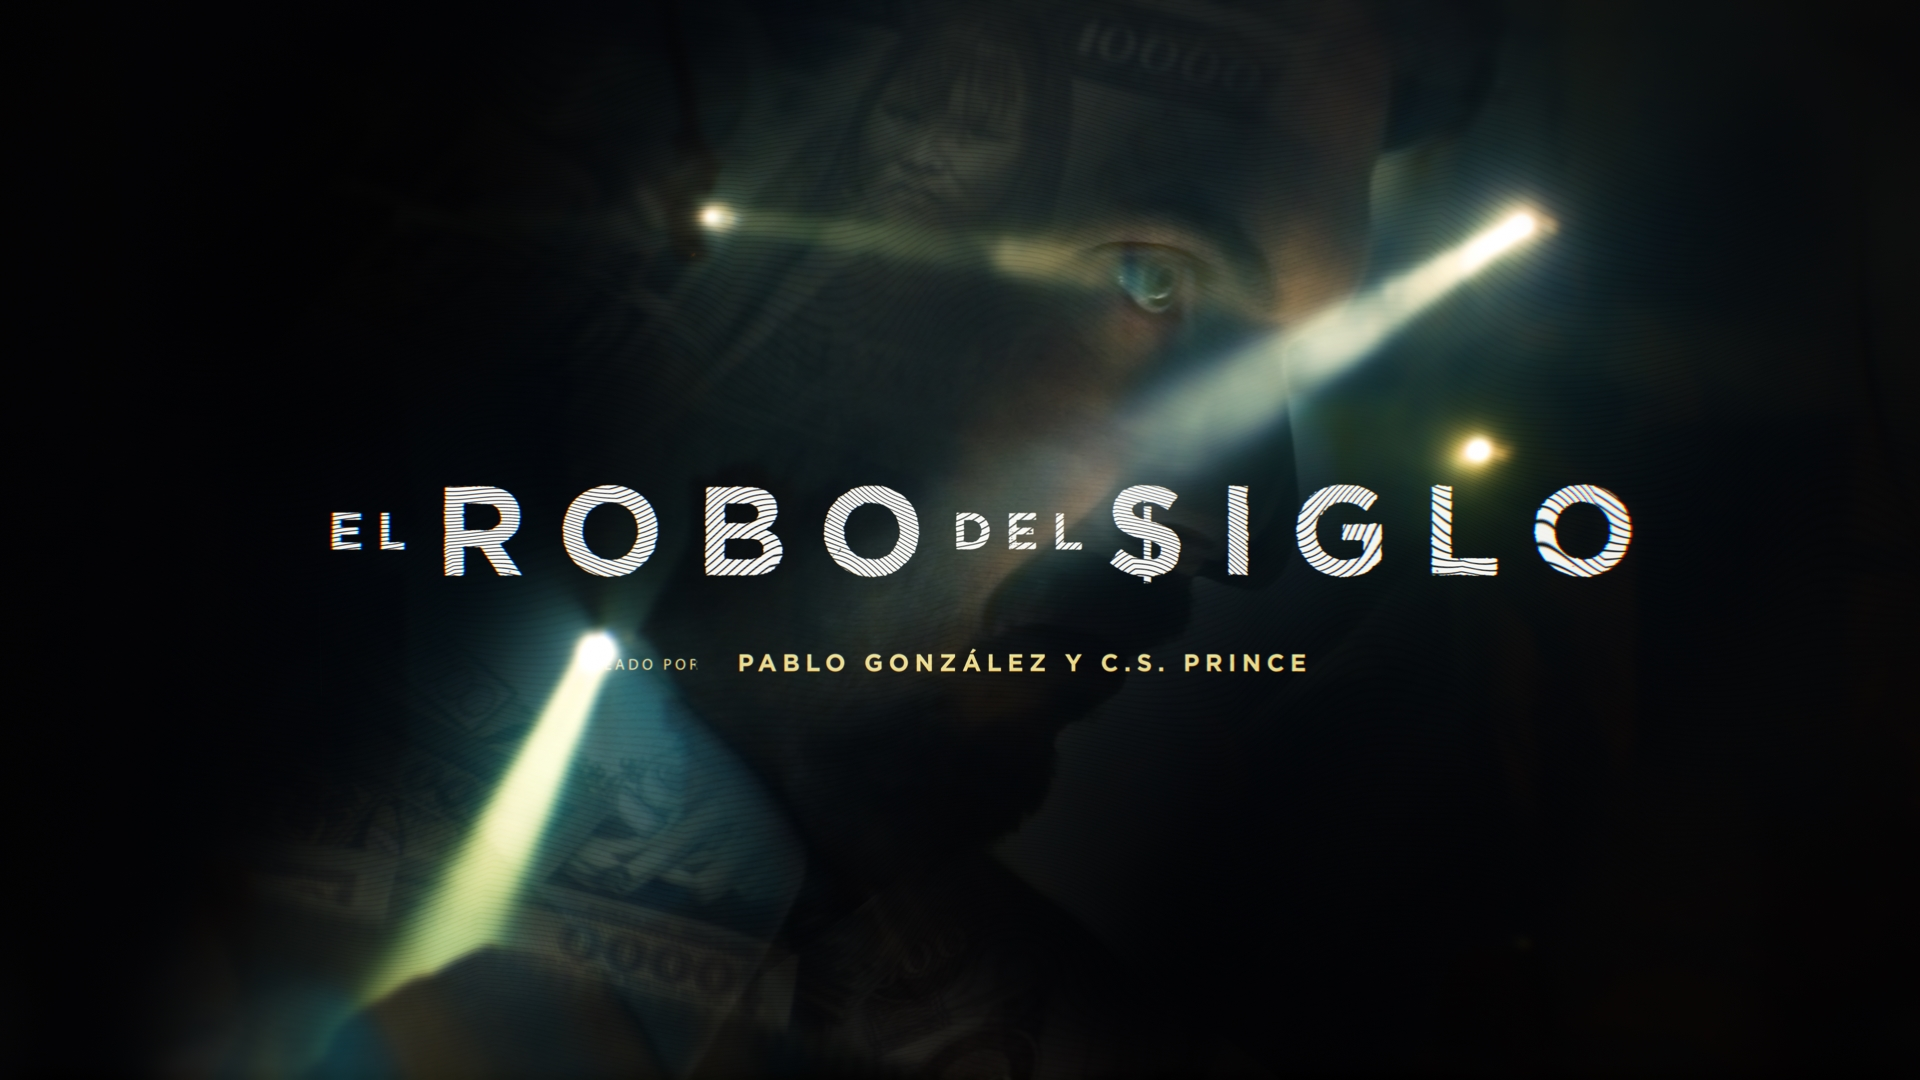 El Robo del Siglo - Main Titles